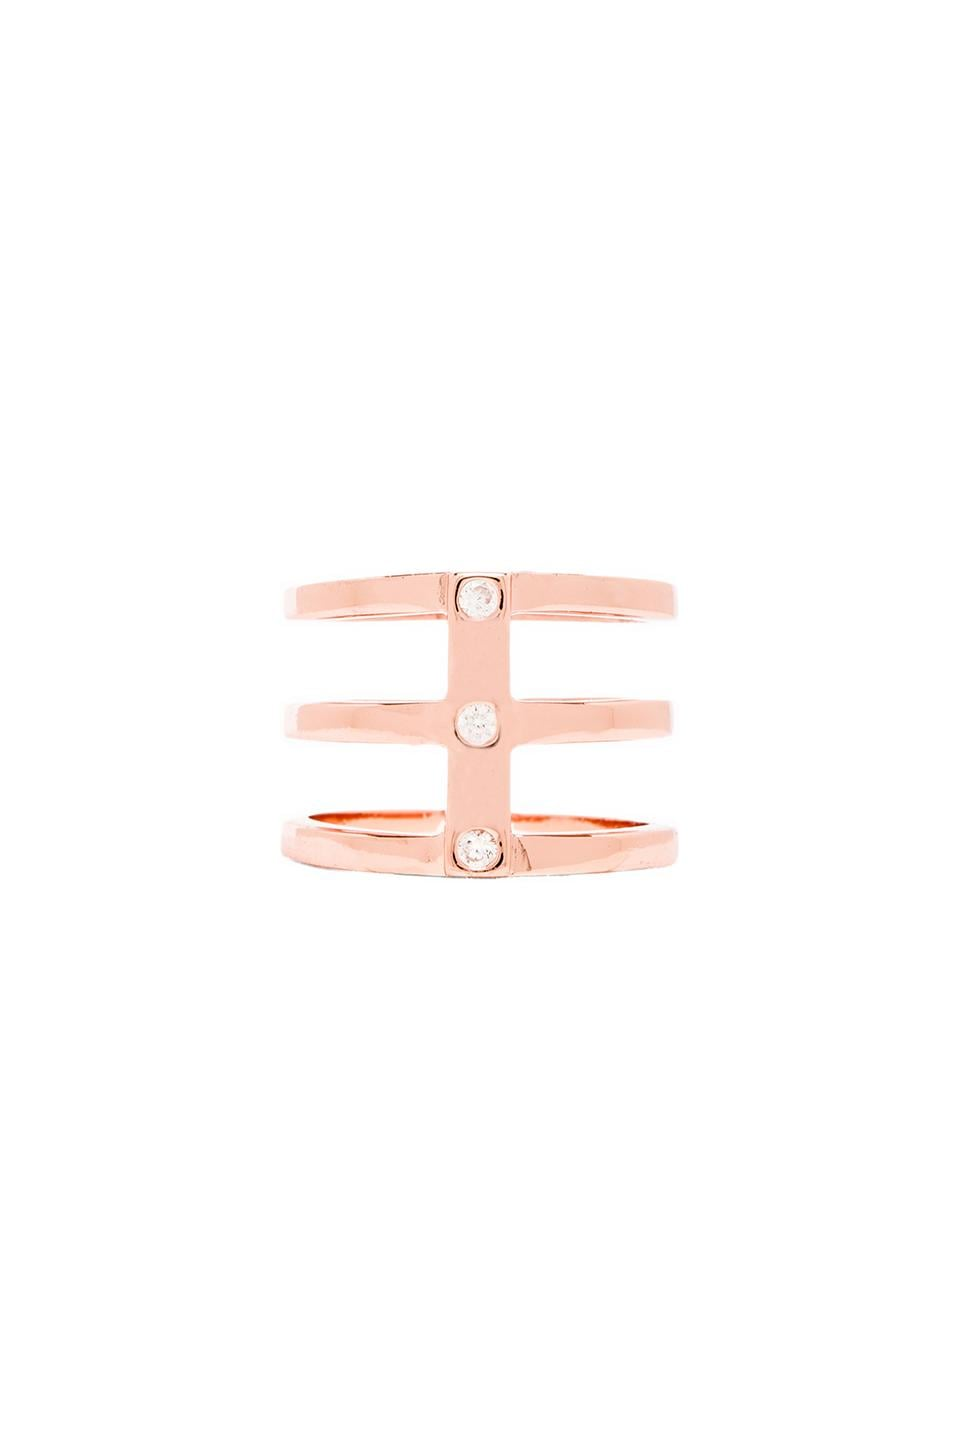 gorjana Lena Ring in Rose Gold